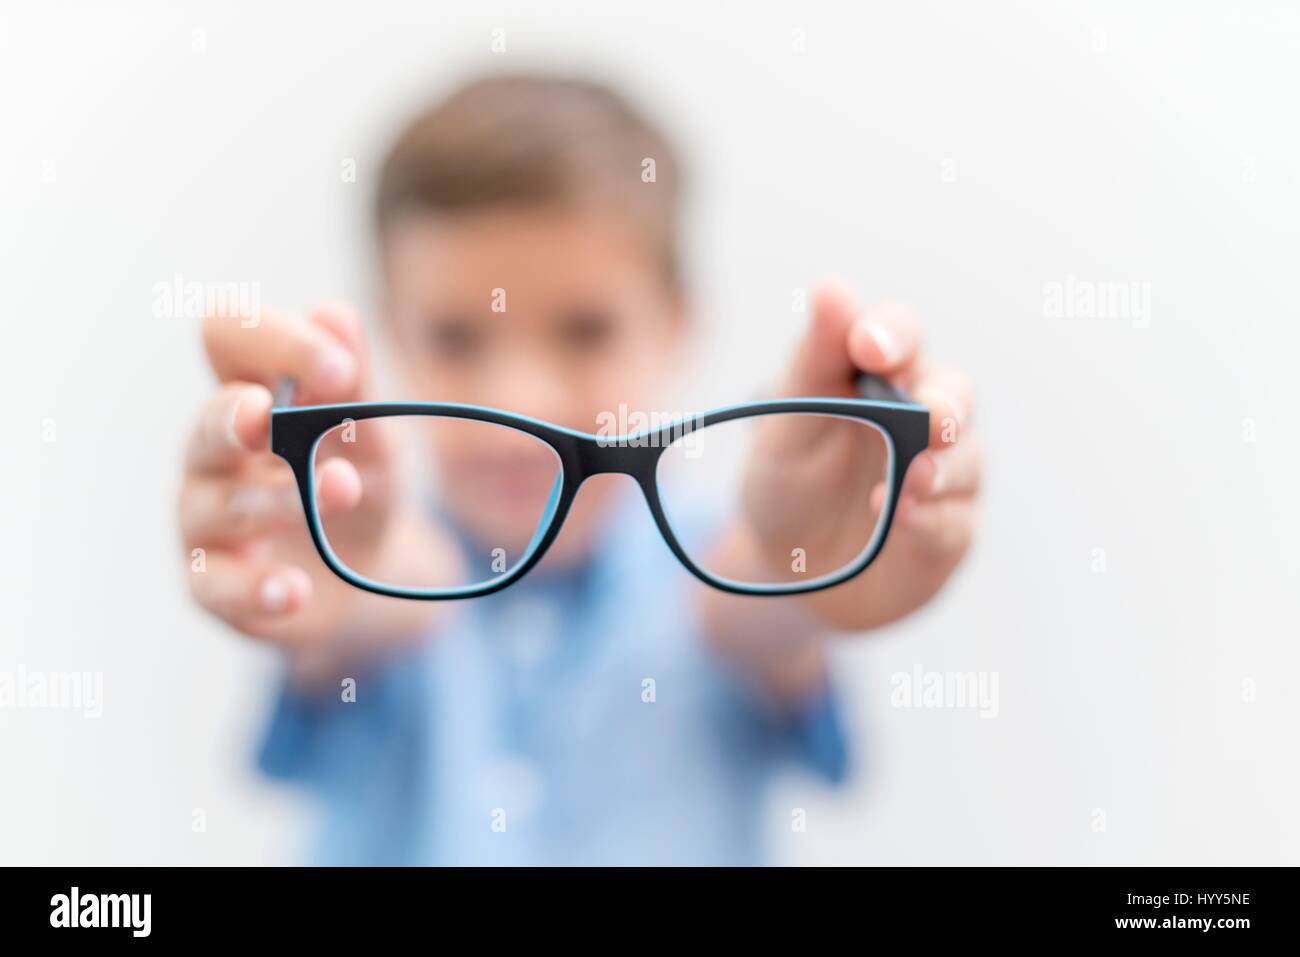 Boy holding glasses close up. - Stock Image